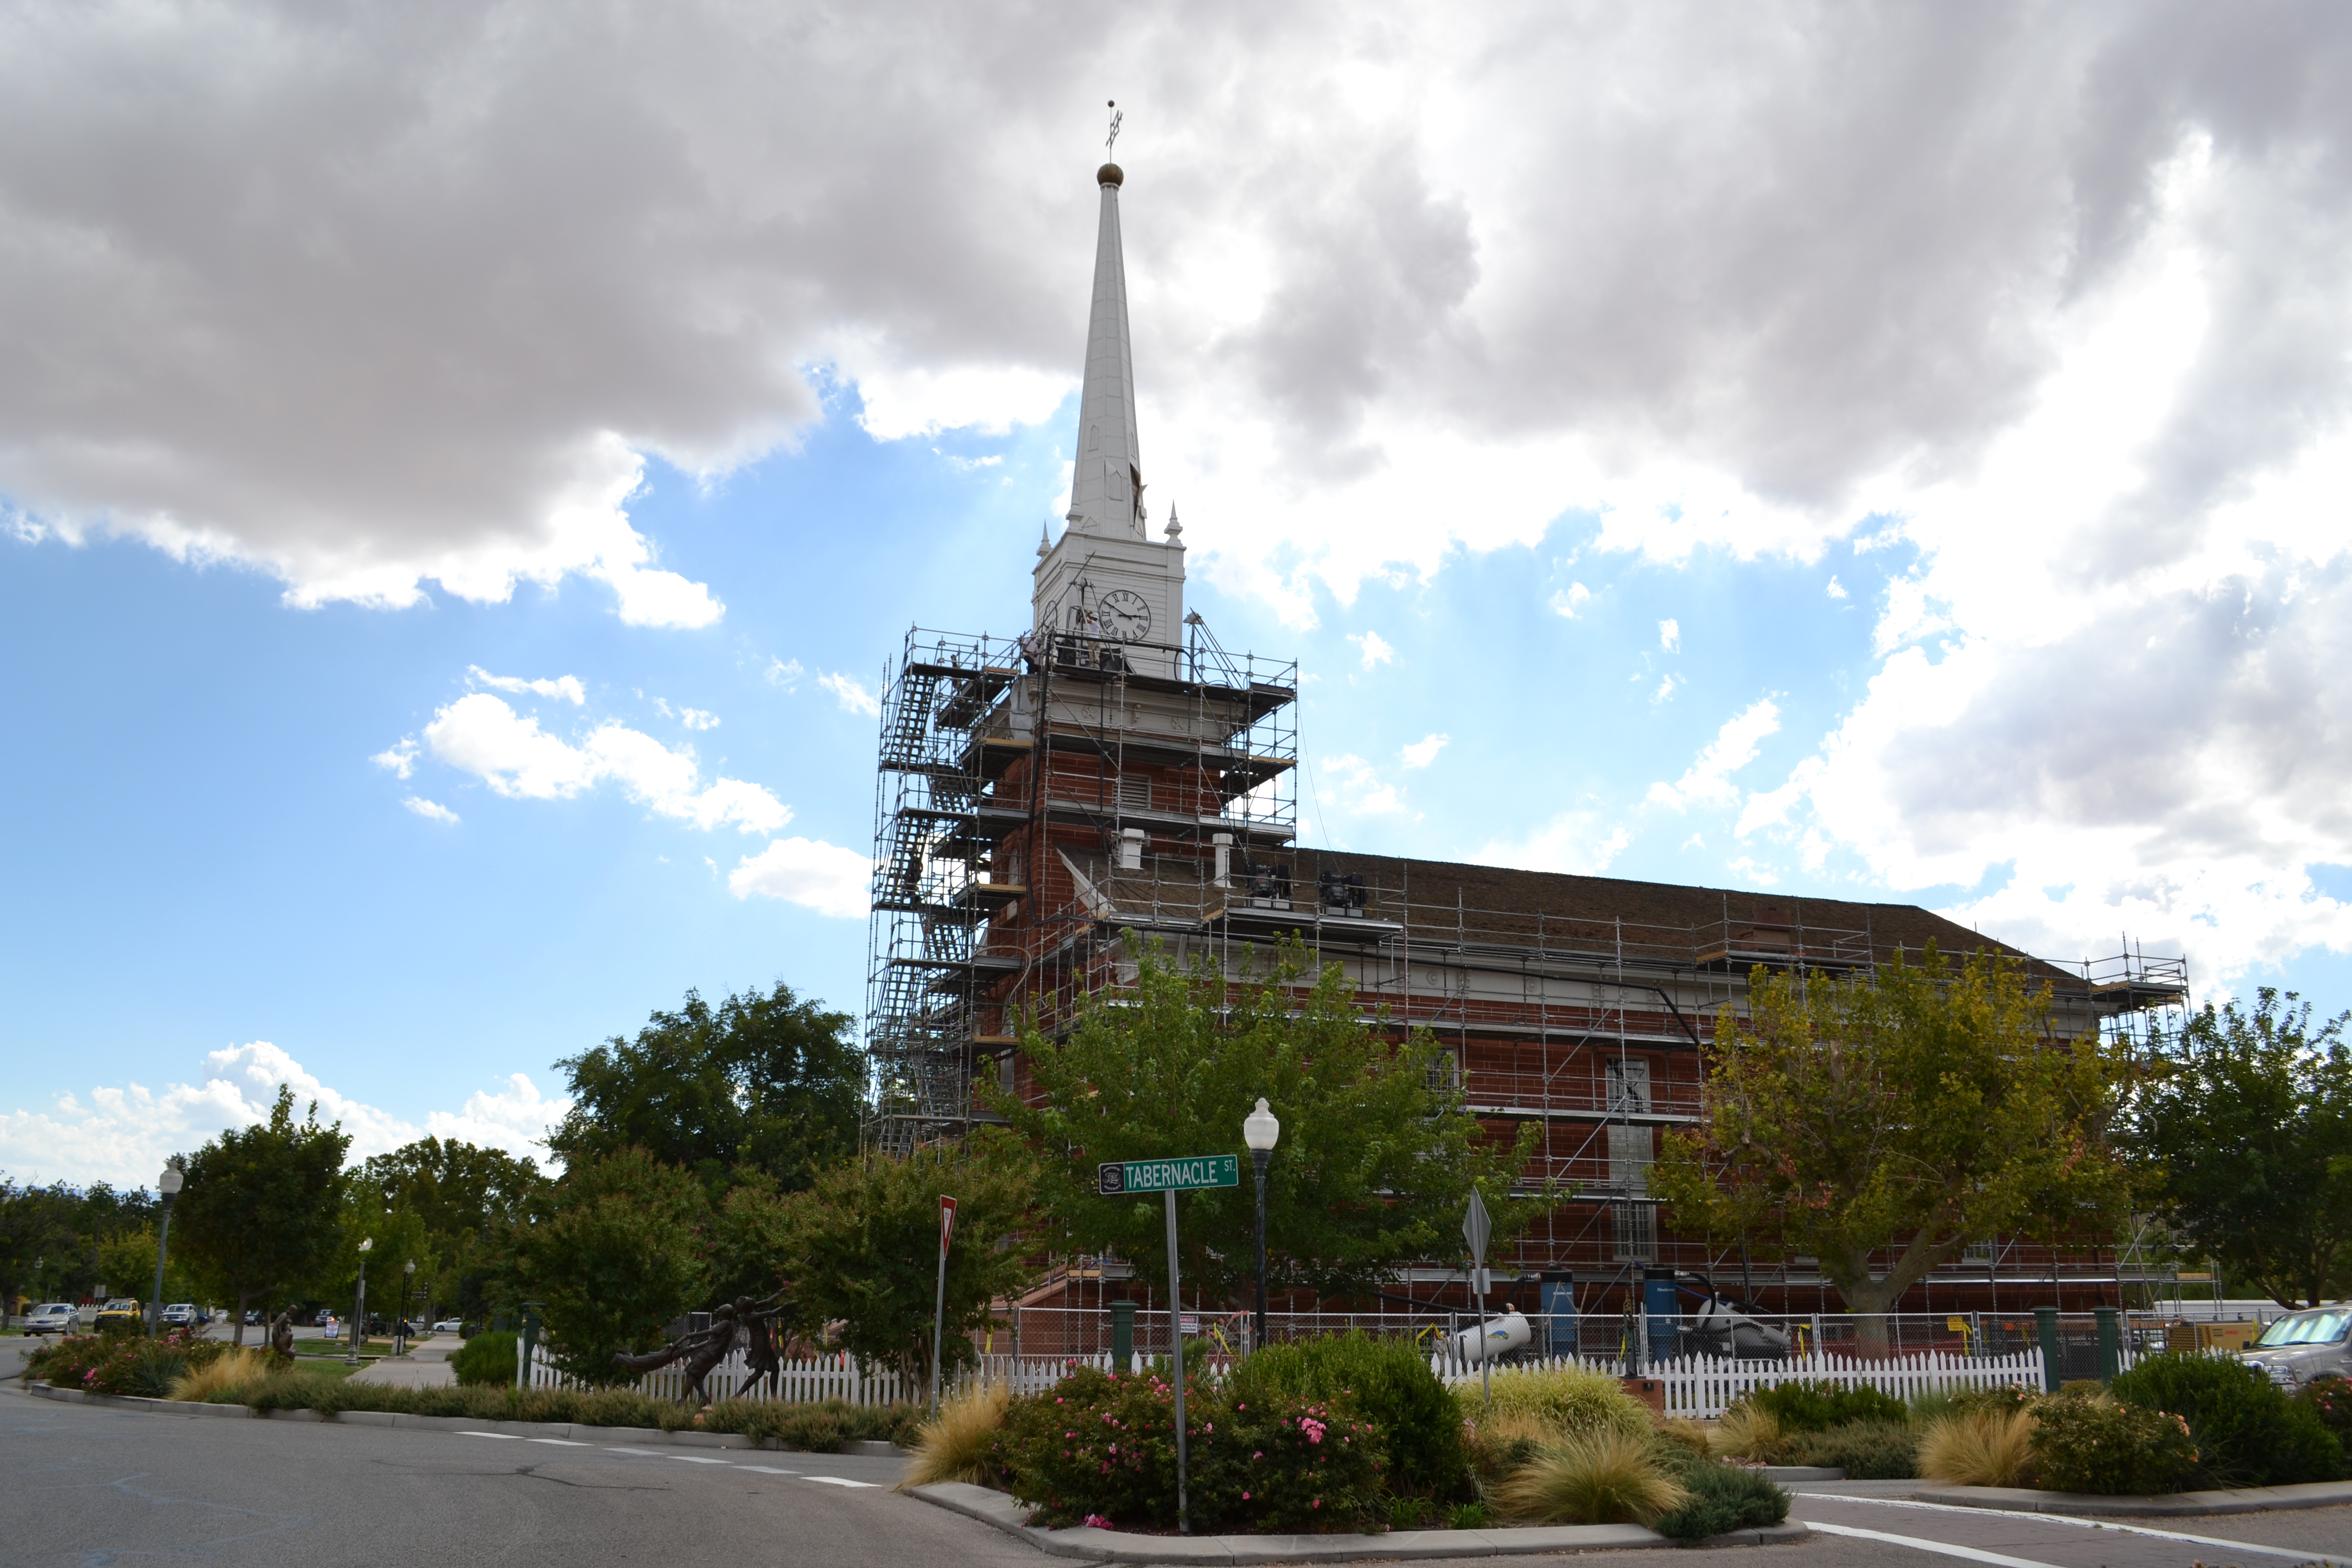 The Church of Jesus Christ of Latter-day Saint's historic Tabernacle is under renovation for structural upgrades, St. George, Utah, Sept. 22, 2016 | Photo by Joseph Witham, St. George News